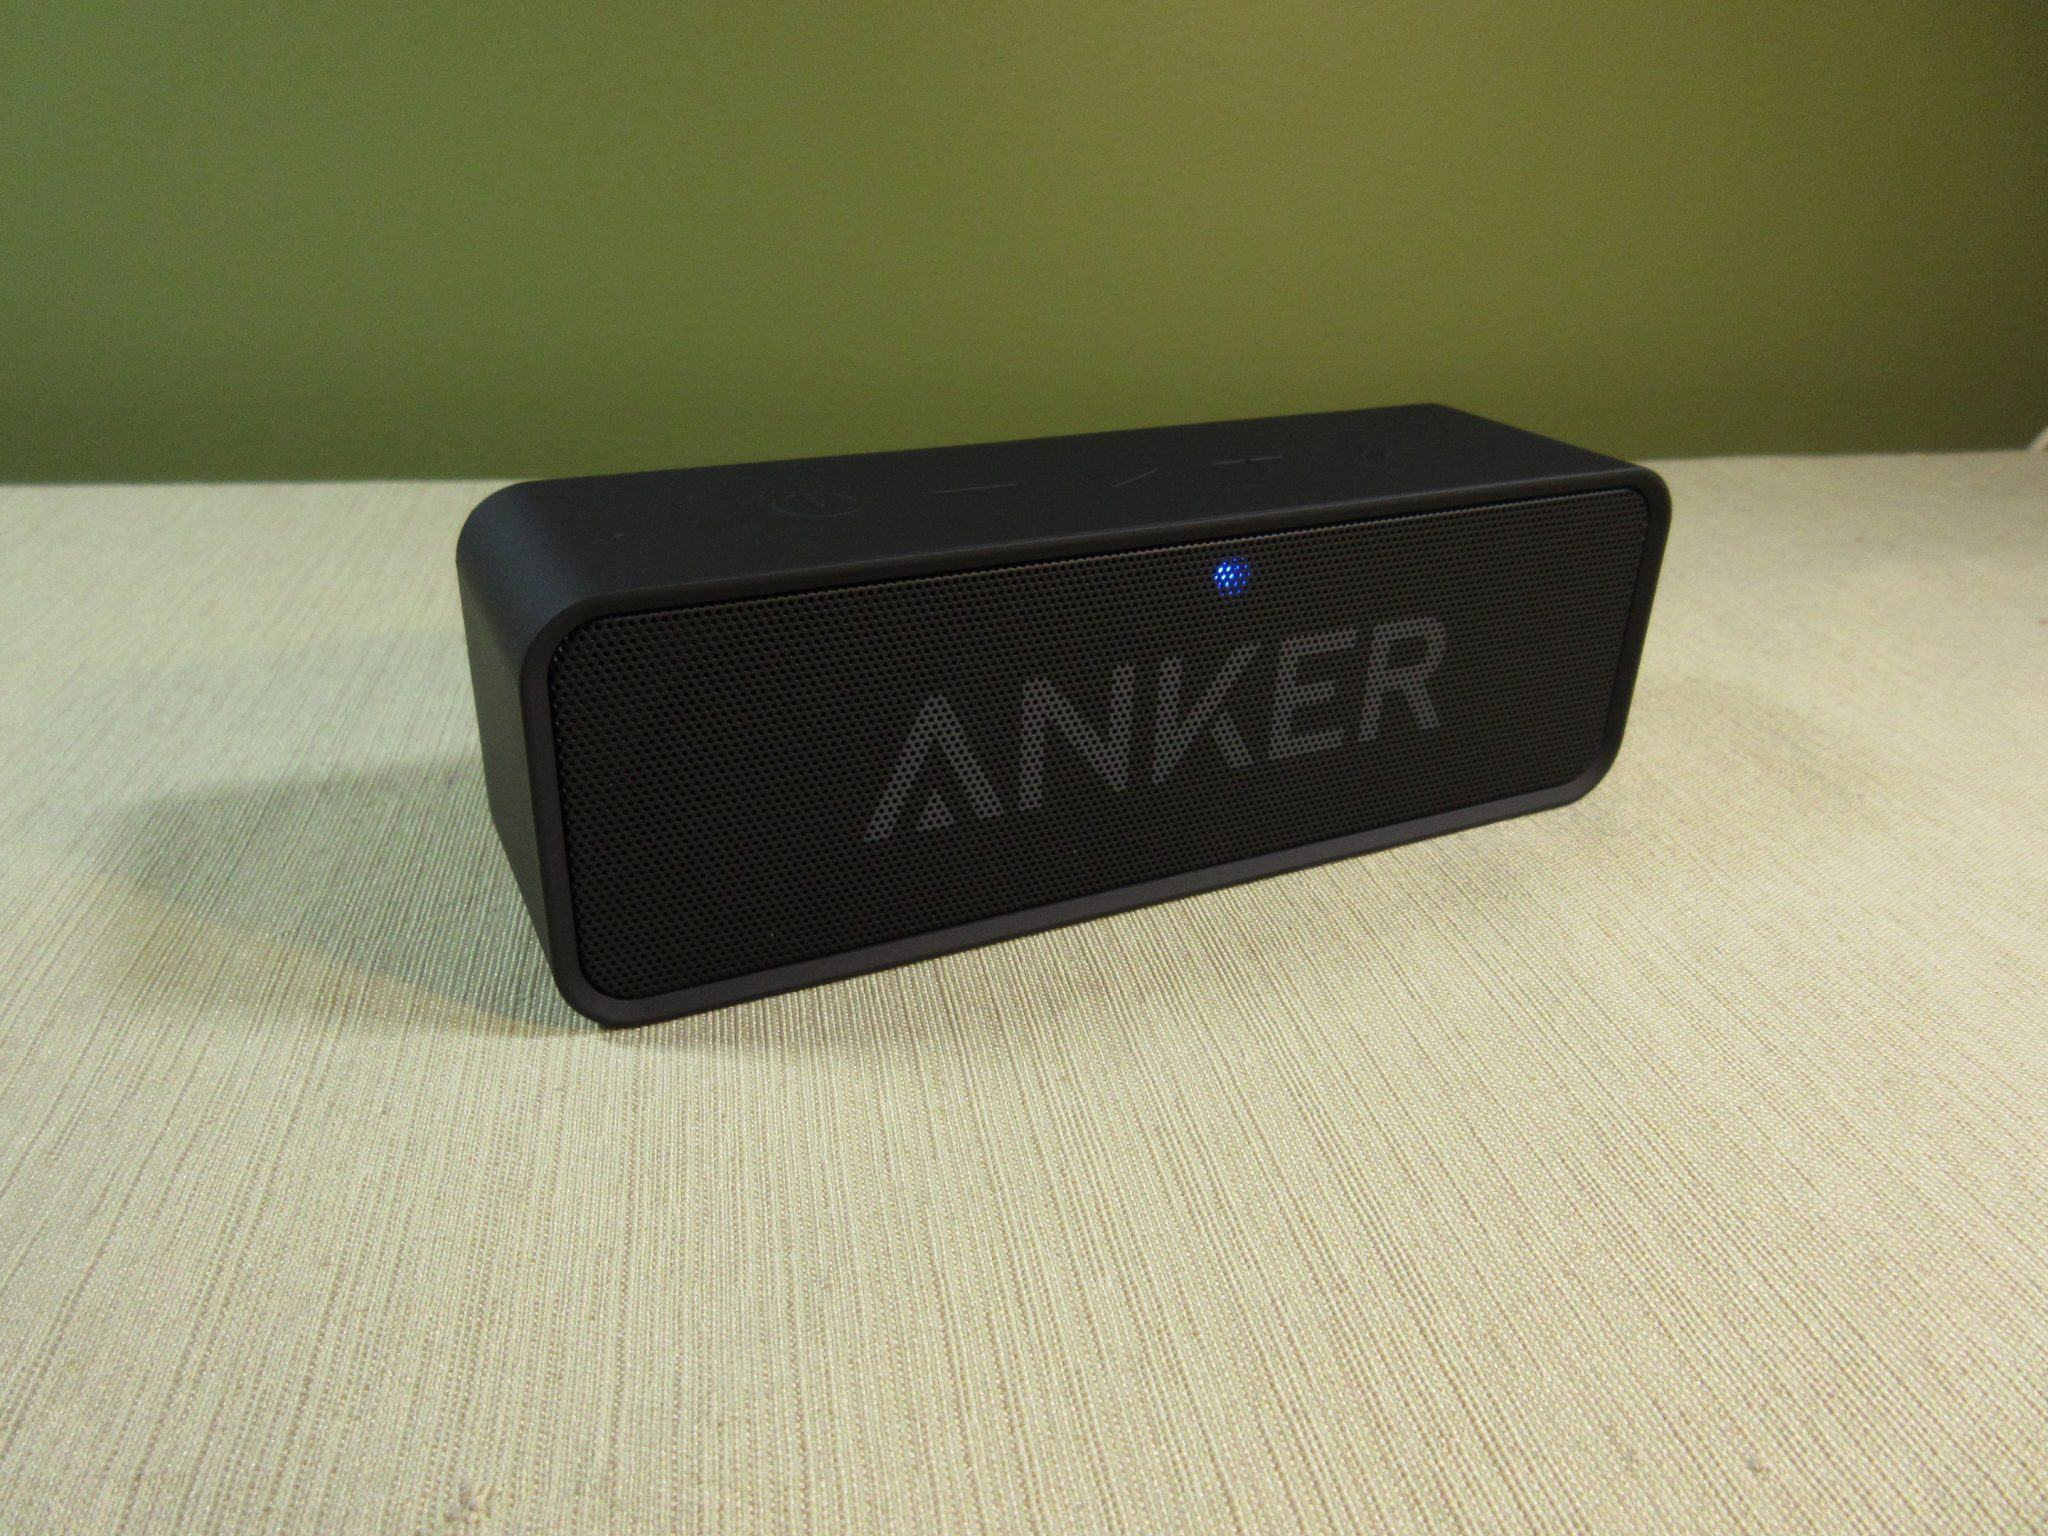 Anker Soundcore Bluetooth Speaker Review Technically Well